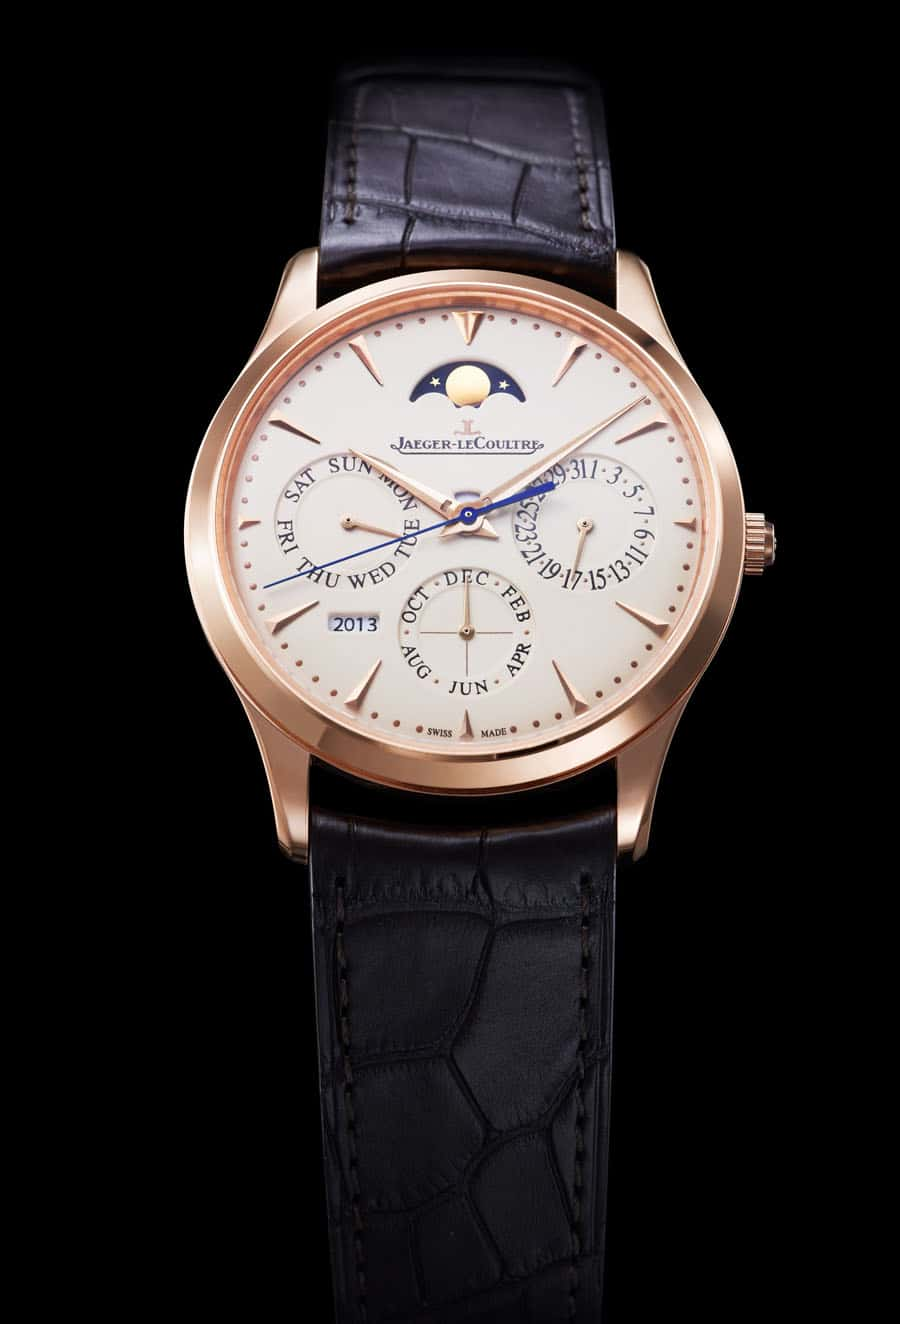 Die Master Ultra Thin Perpetual von Jaeger-LeCoultre